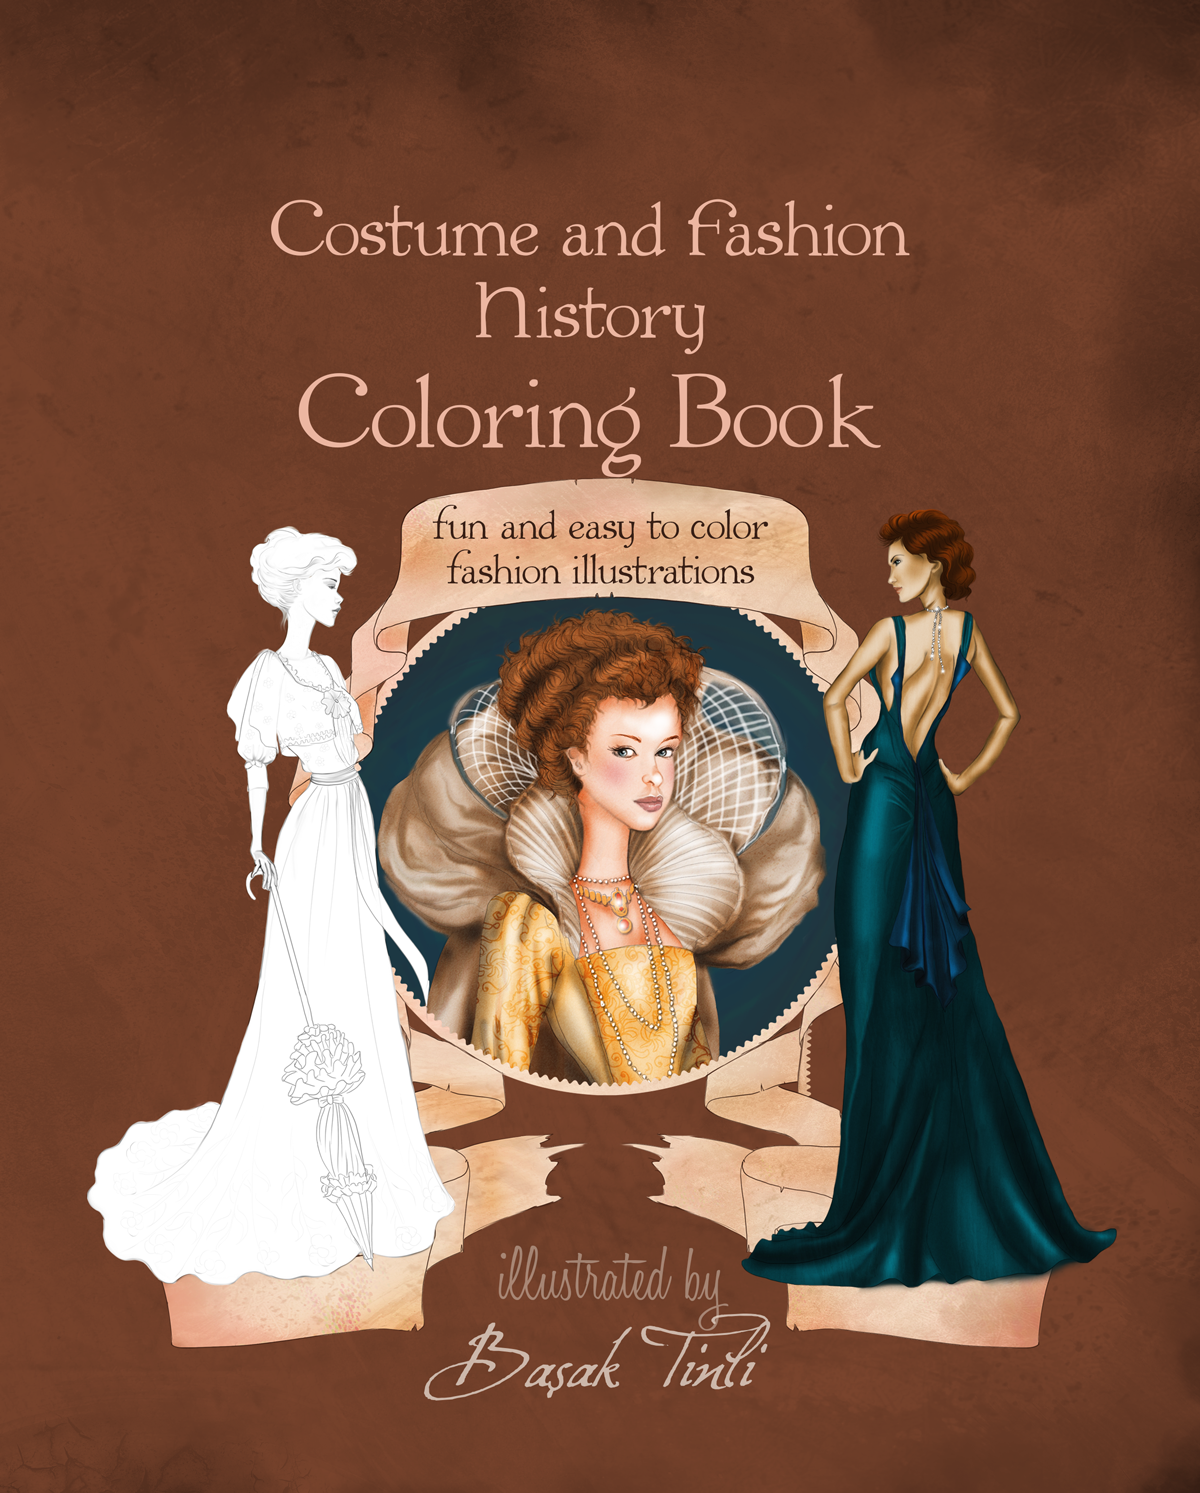 Fashion Book Cover Job : Cover costume and fashion history coloring book by